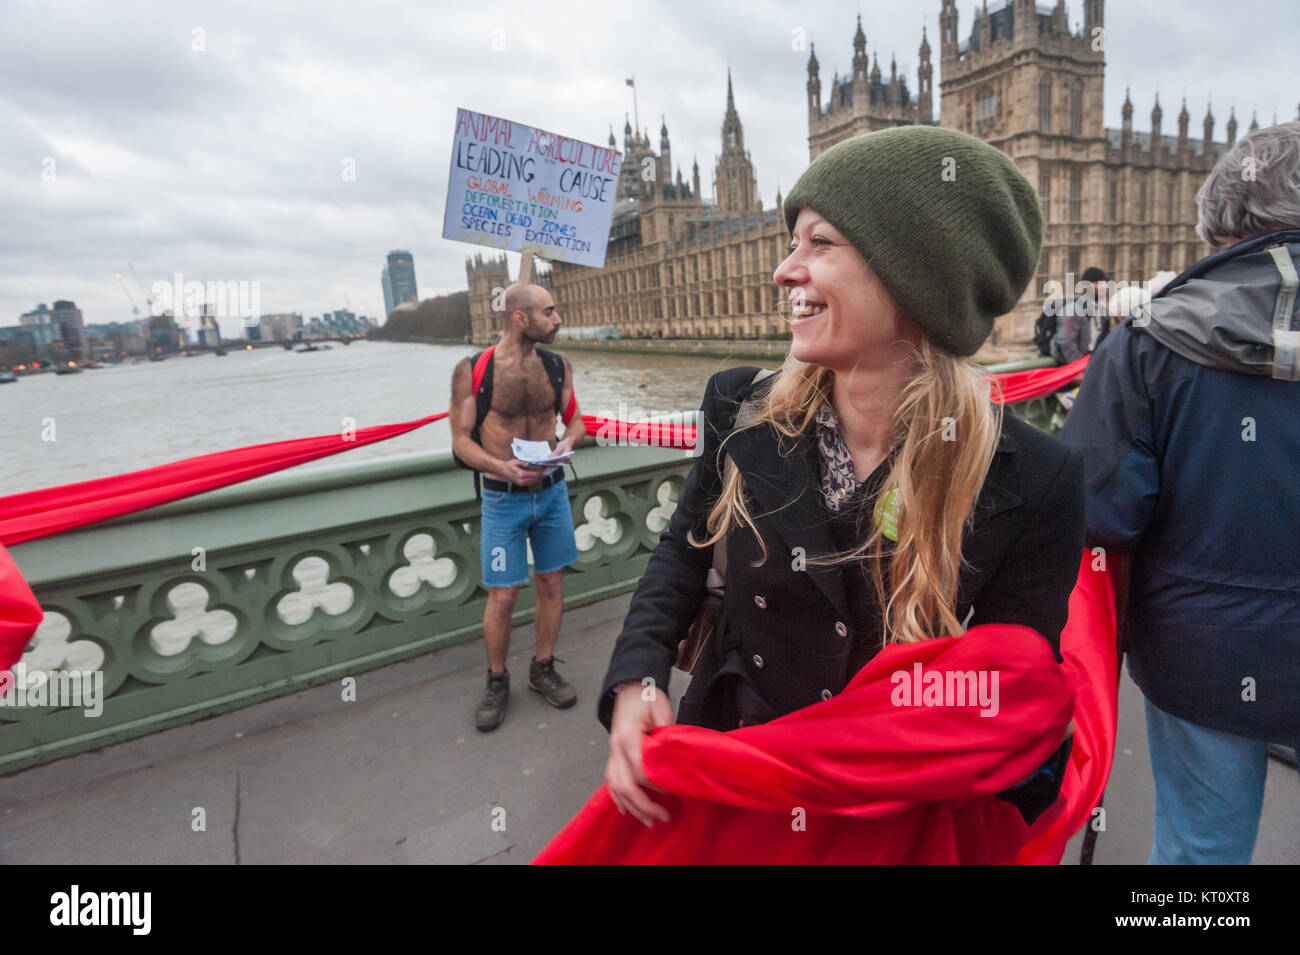 Green Party London Mayoral Candidate Sian Berry holds part of the red line on Westminster Bridge in the Campaign - Stock Image